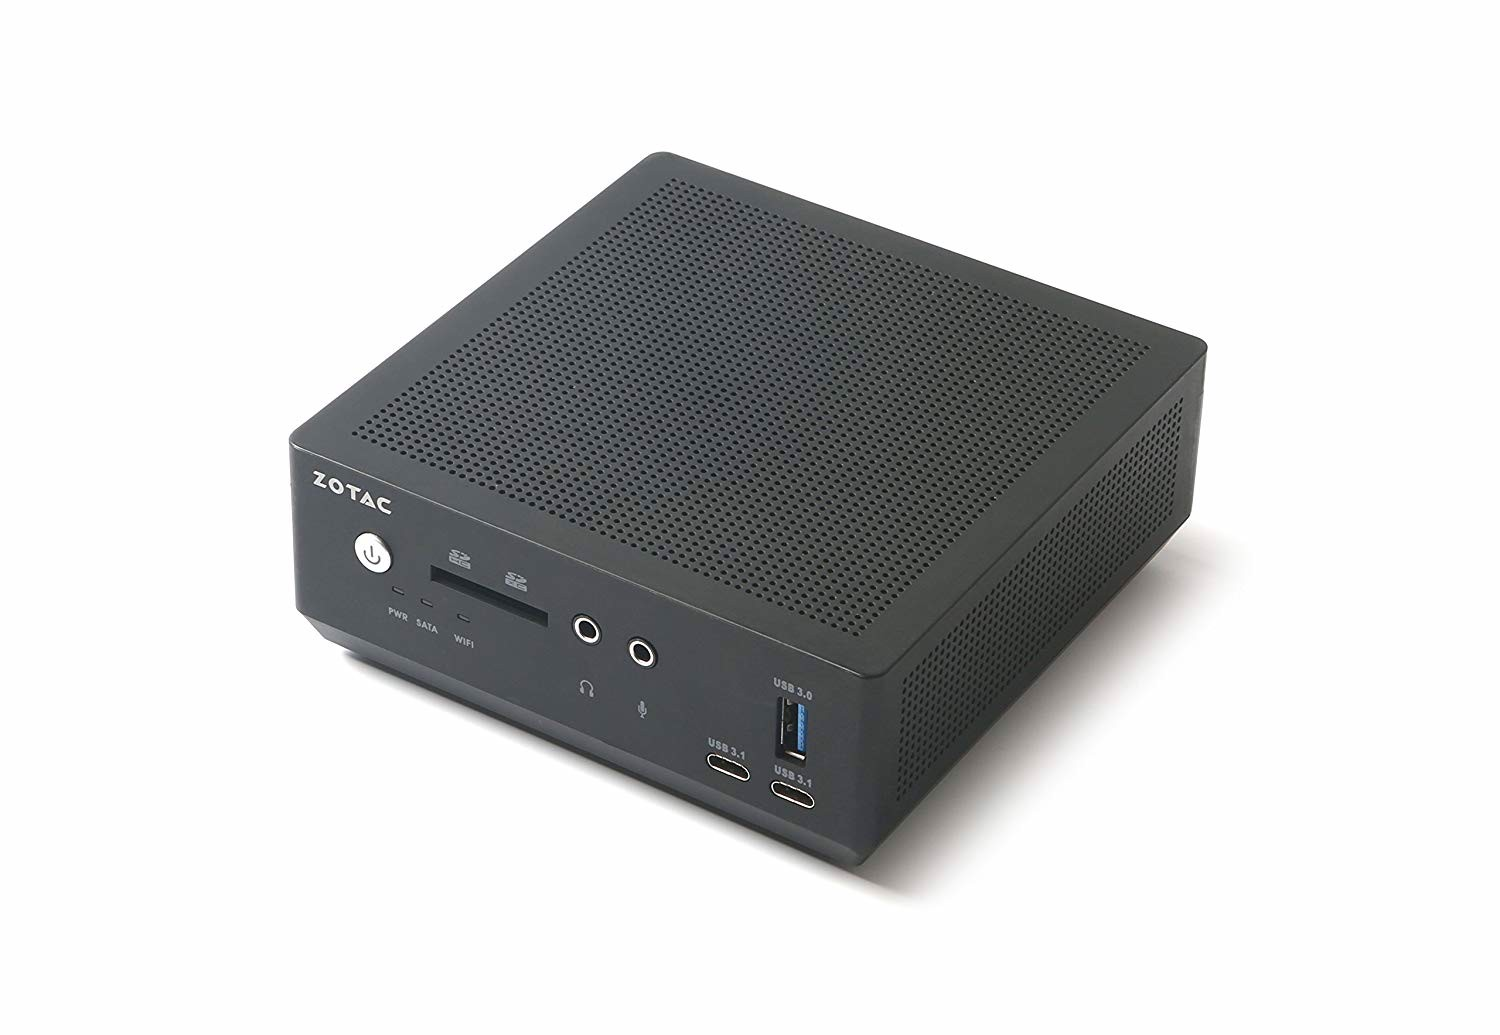 ZOTAC ZBOX MI640 Nano Plus Mini PC